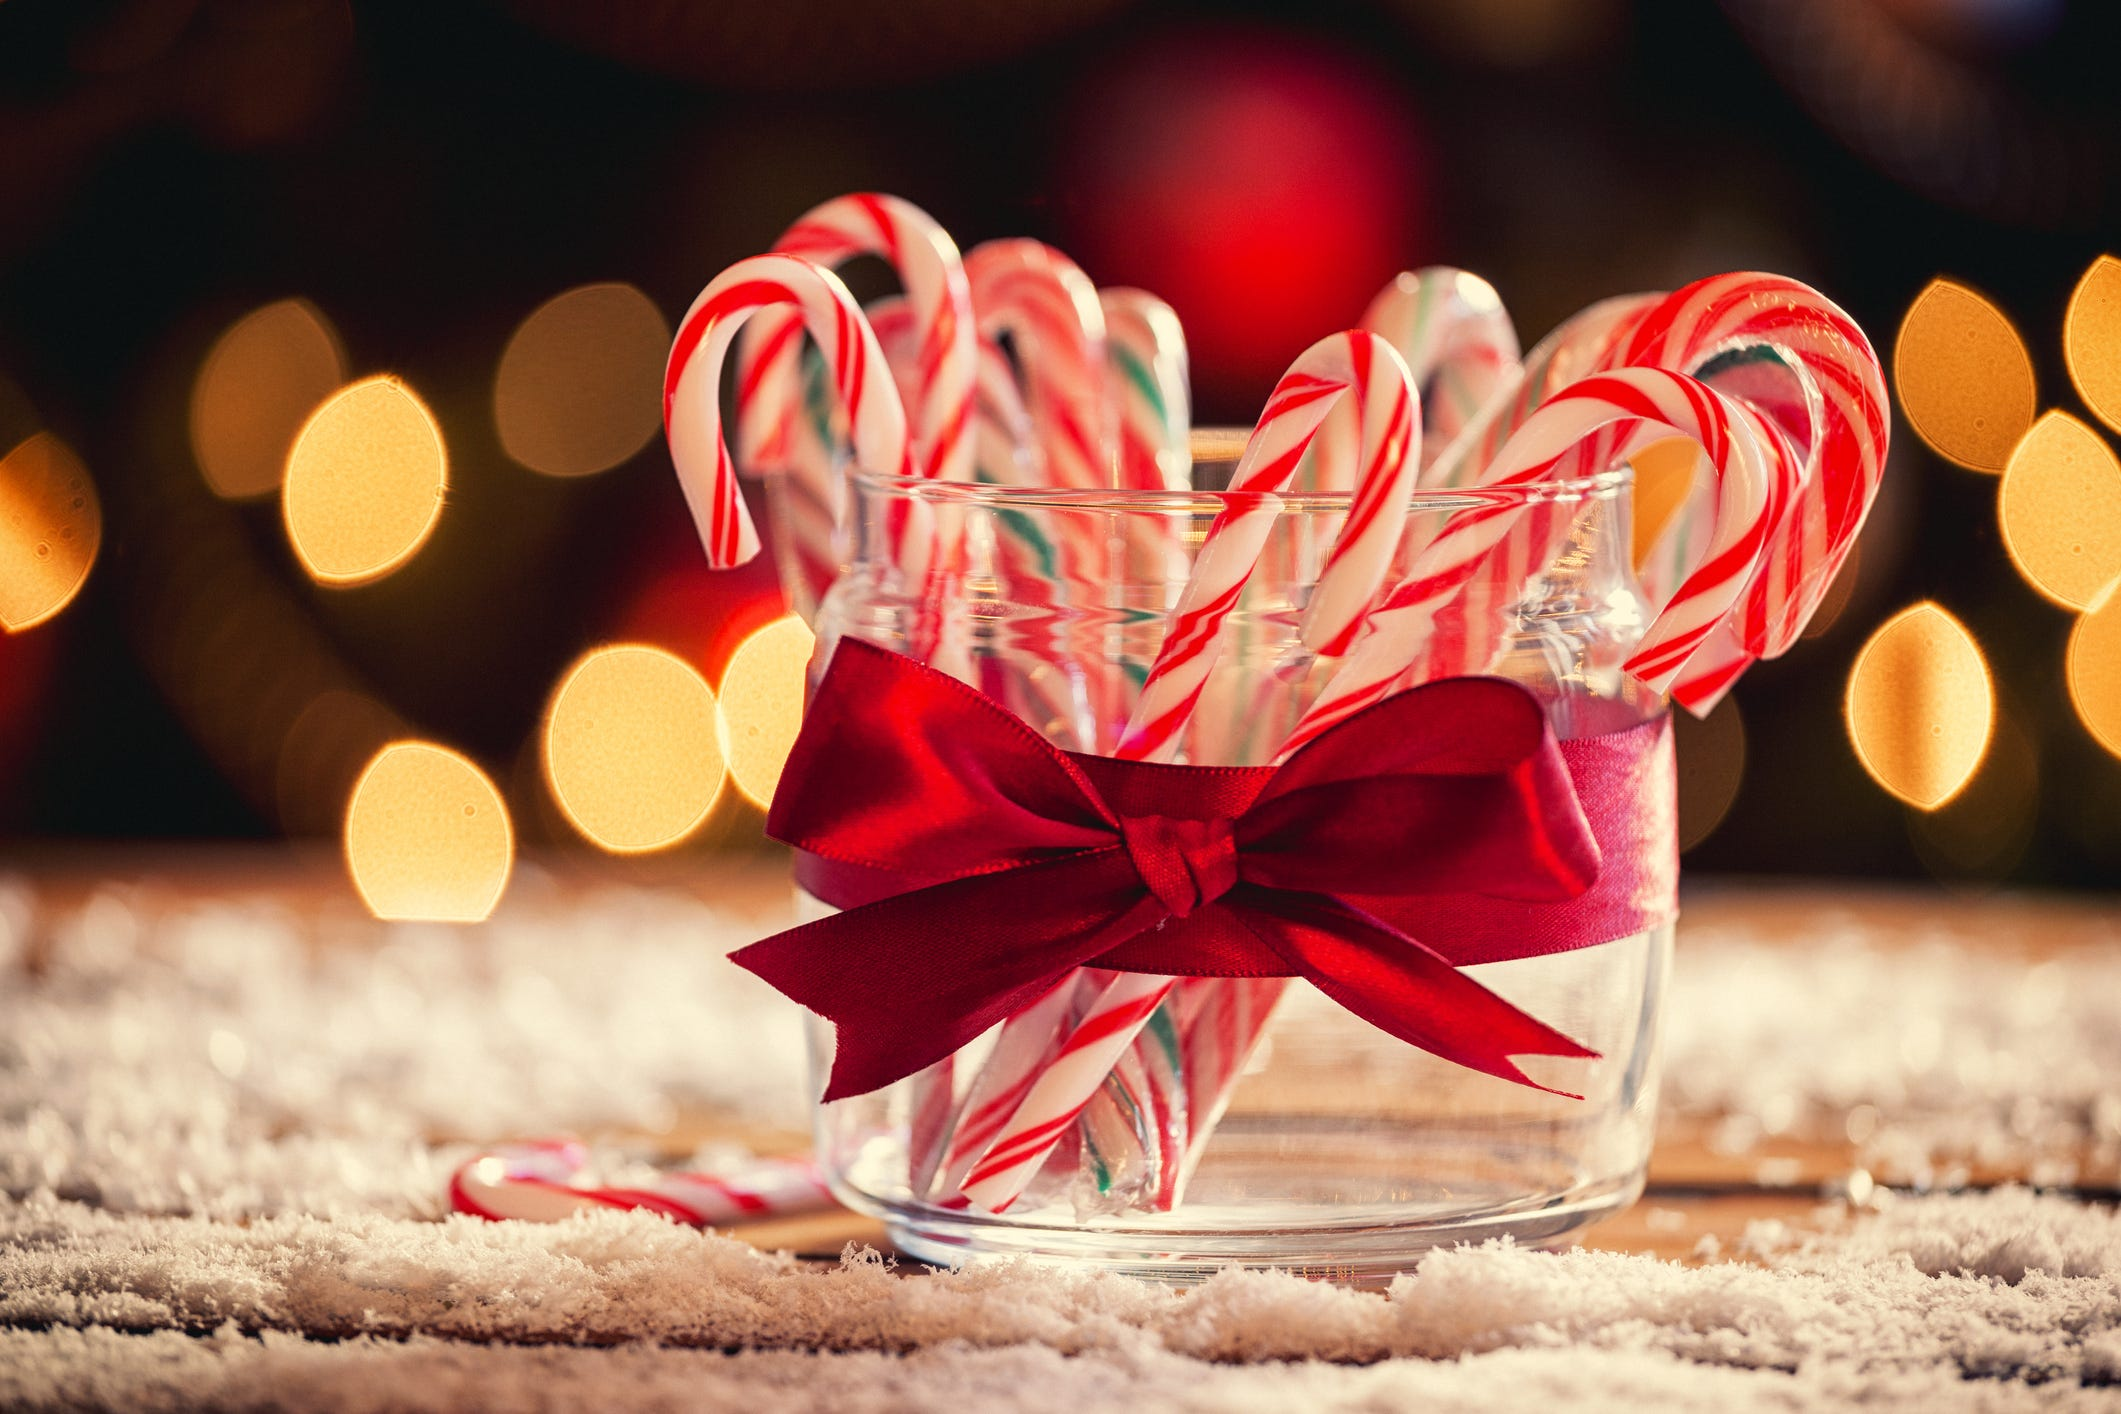 Principal on leave after banning Christmas decorations, including candy canes and reindeer